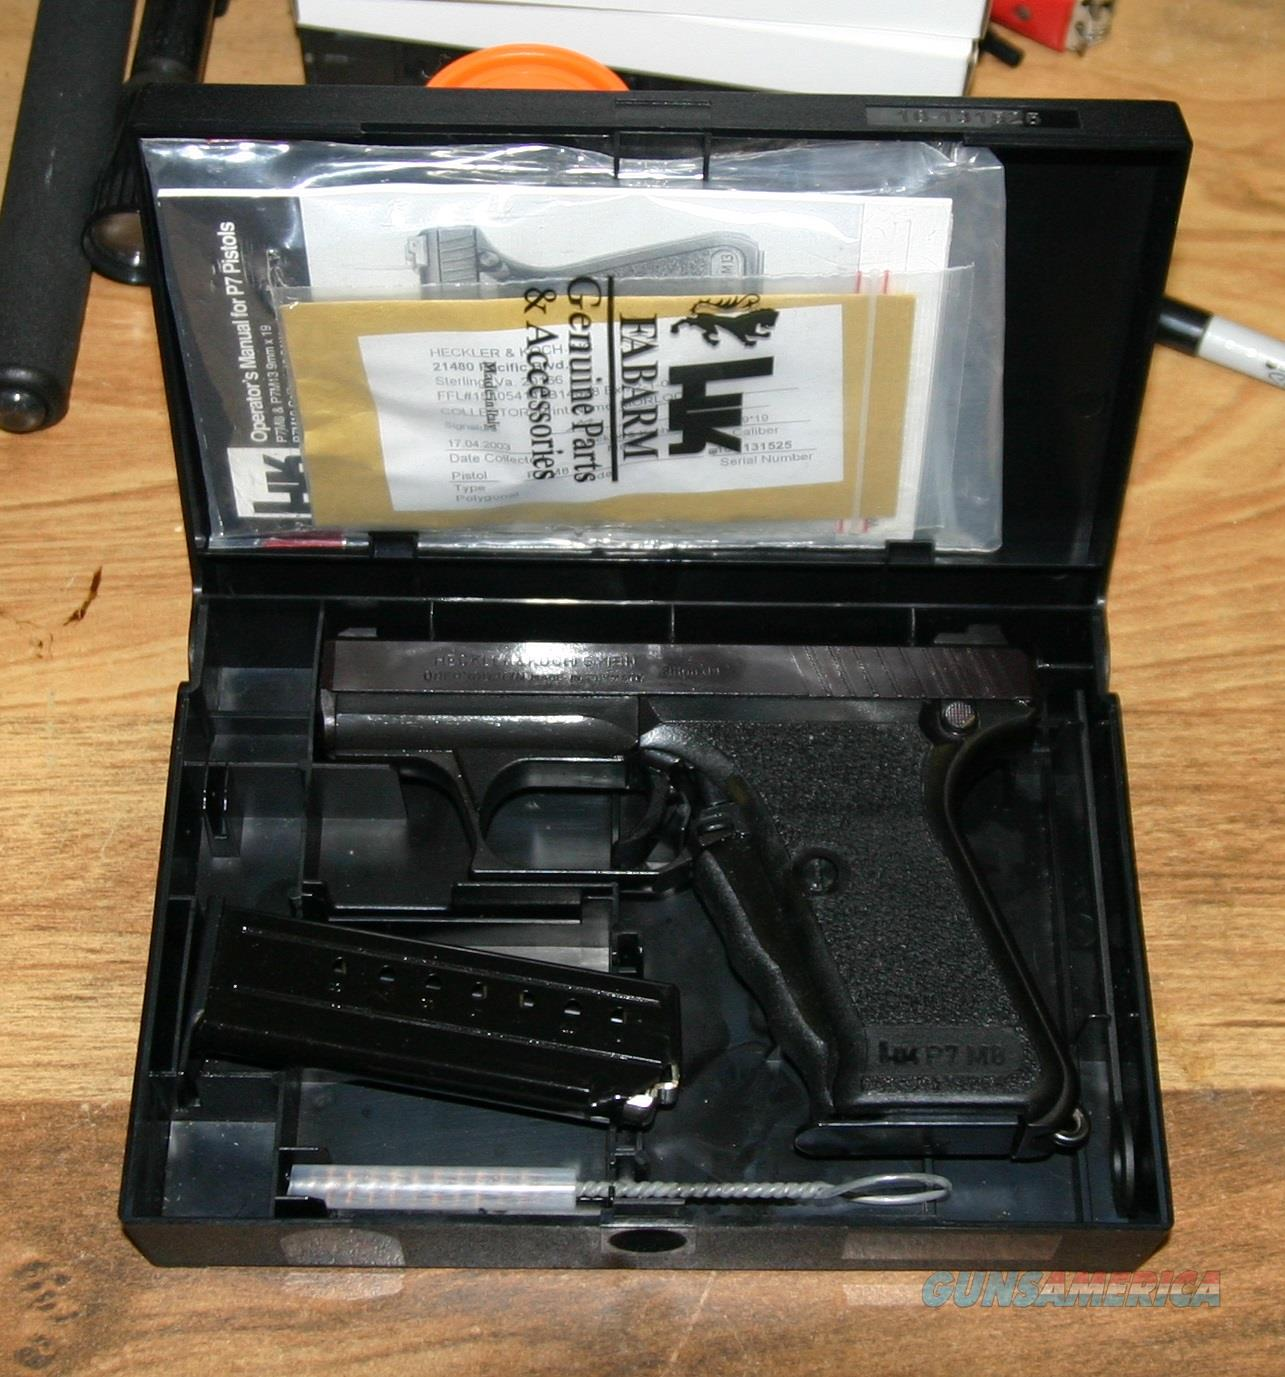 Heckler & Koch P7 M8, P-7 9mm  Guns > Pistols > Heckler & Koch Pistols > SteelFrame